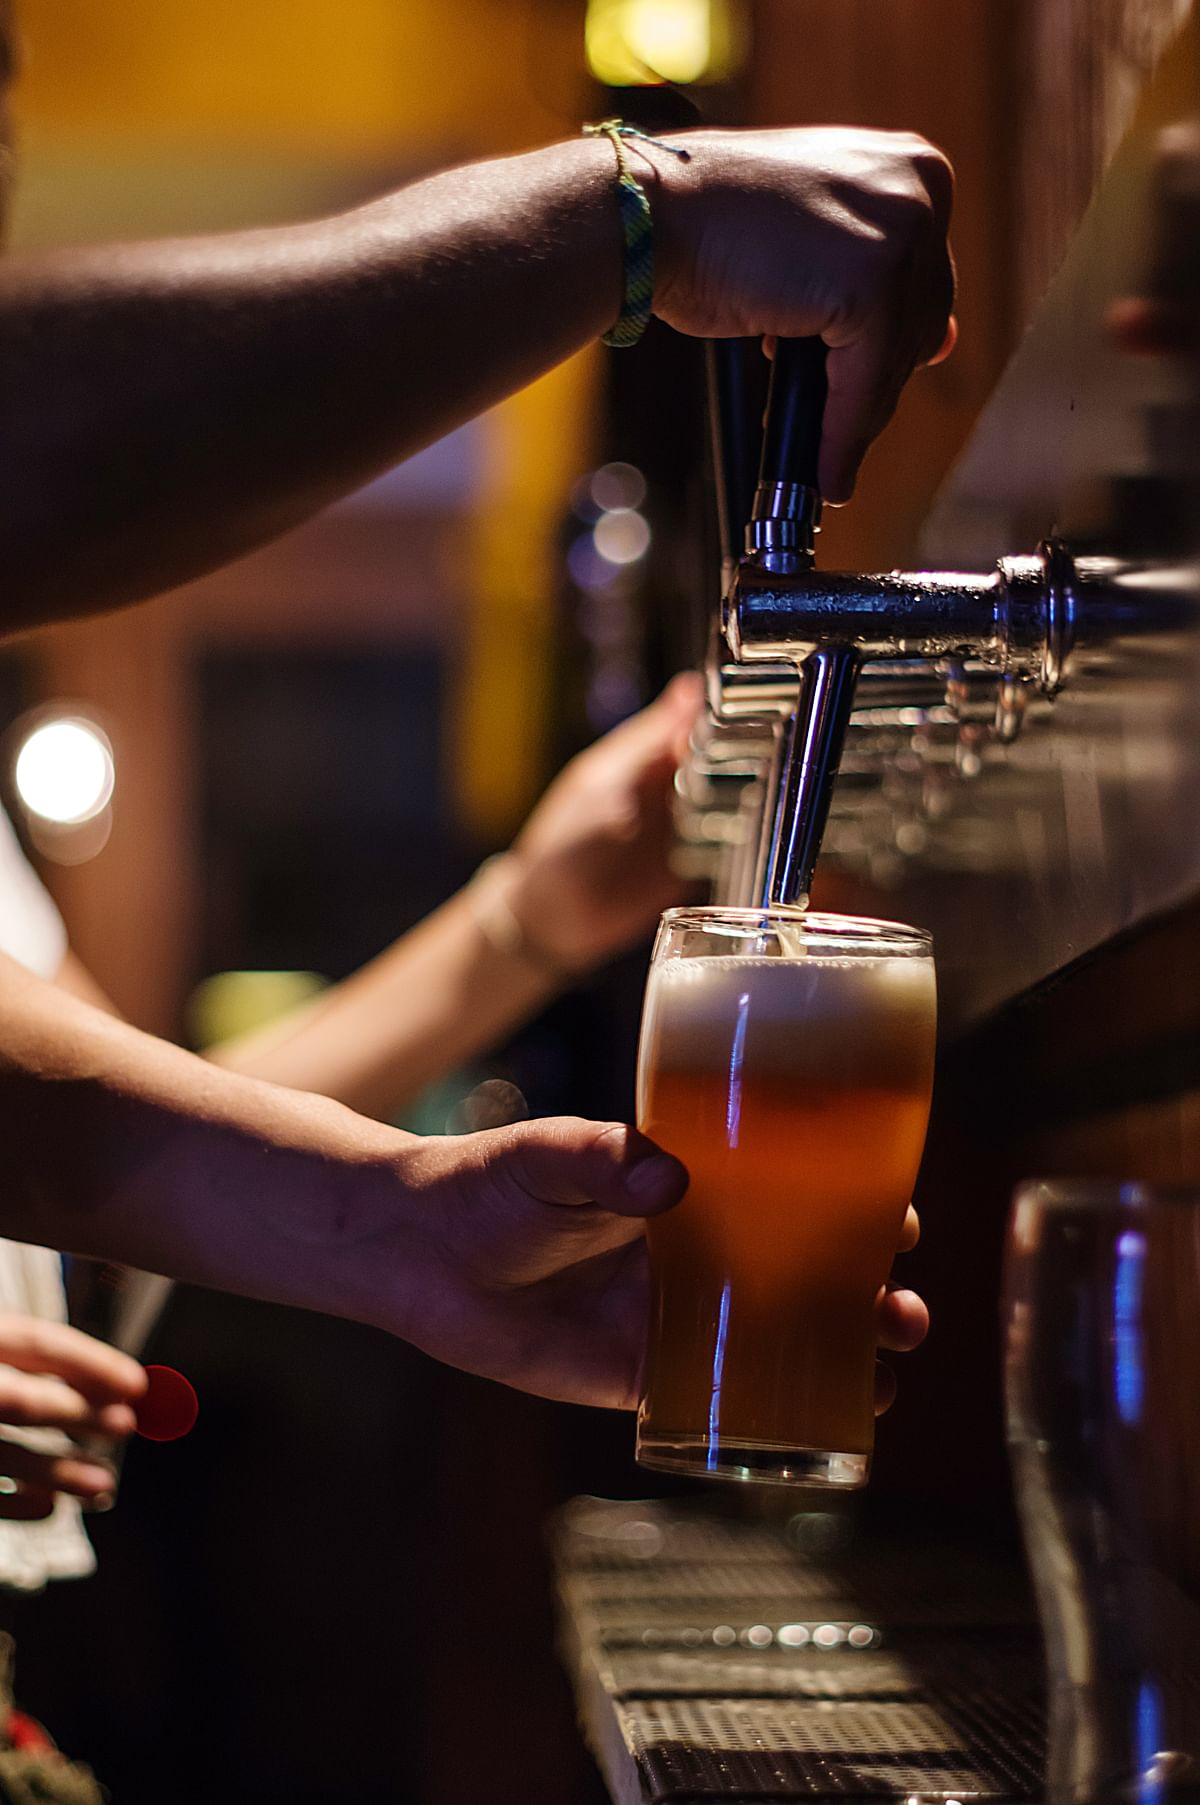 Drinking tonight? NASA suggests half a beer can hamper your hand-eye coordination